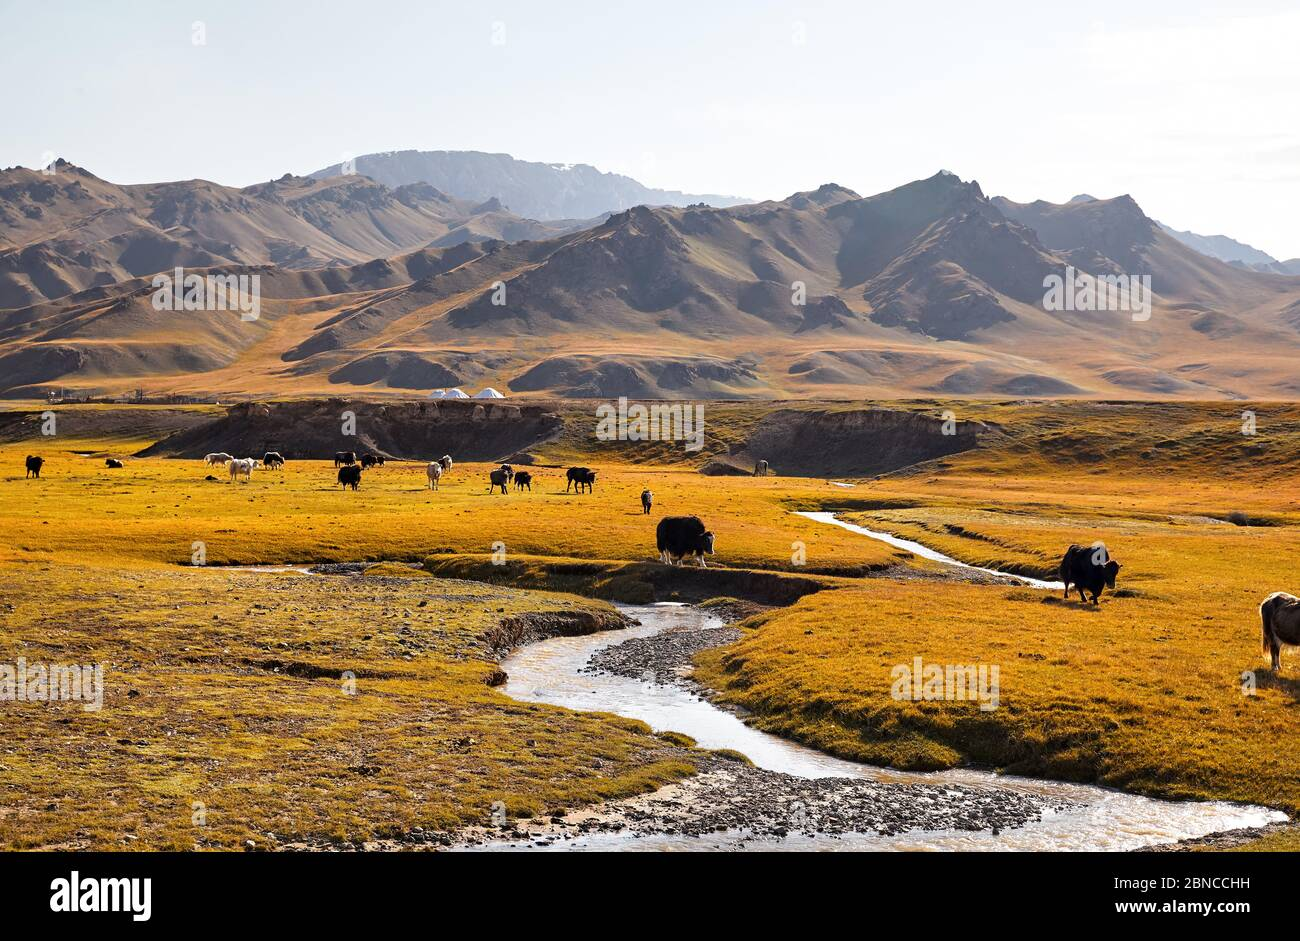 Herd of Yak crossing eating grass near the river in the mountain valley of Kyrgyzstan, Central Asia Stock Photo